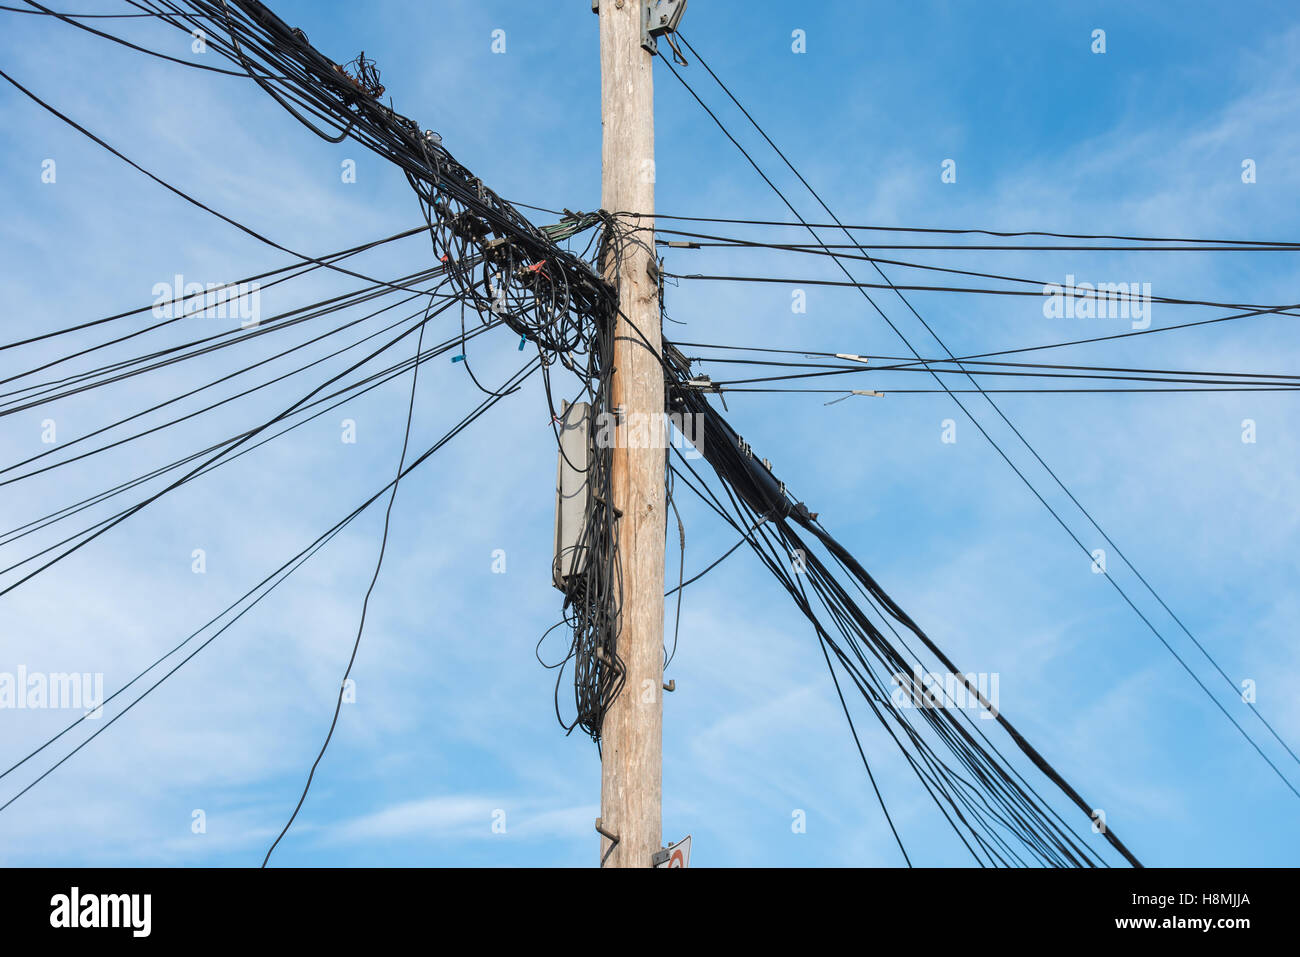 Cable Wires Mess Stockfotos & Cable Wires Mess Bilder - Alamy